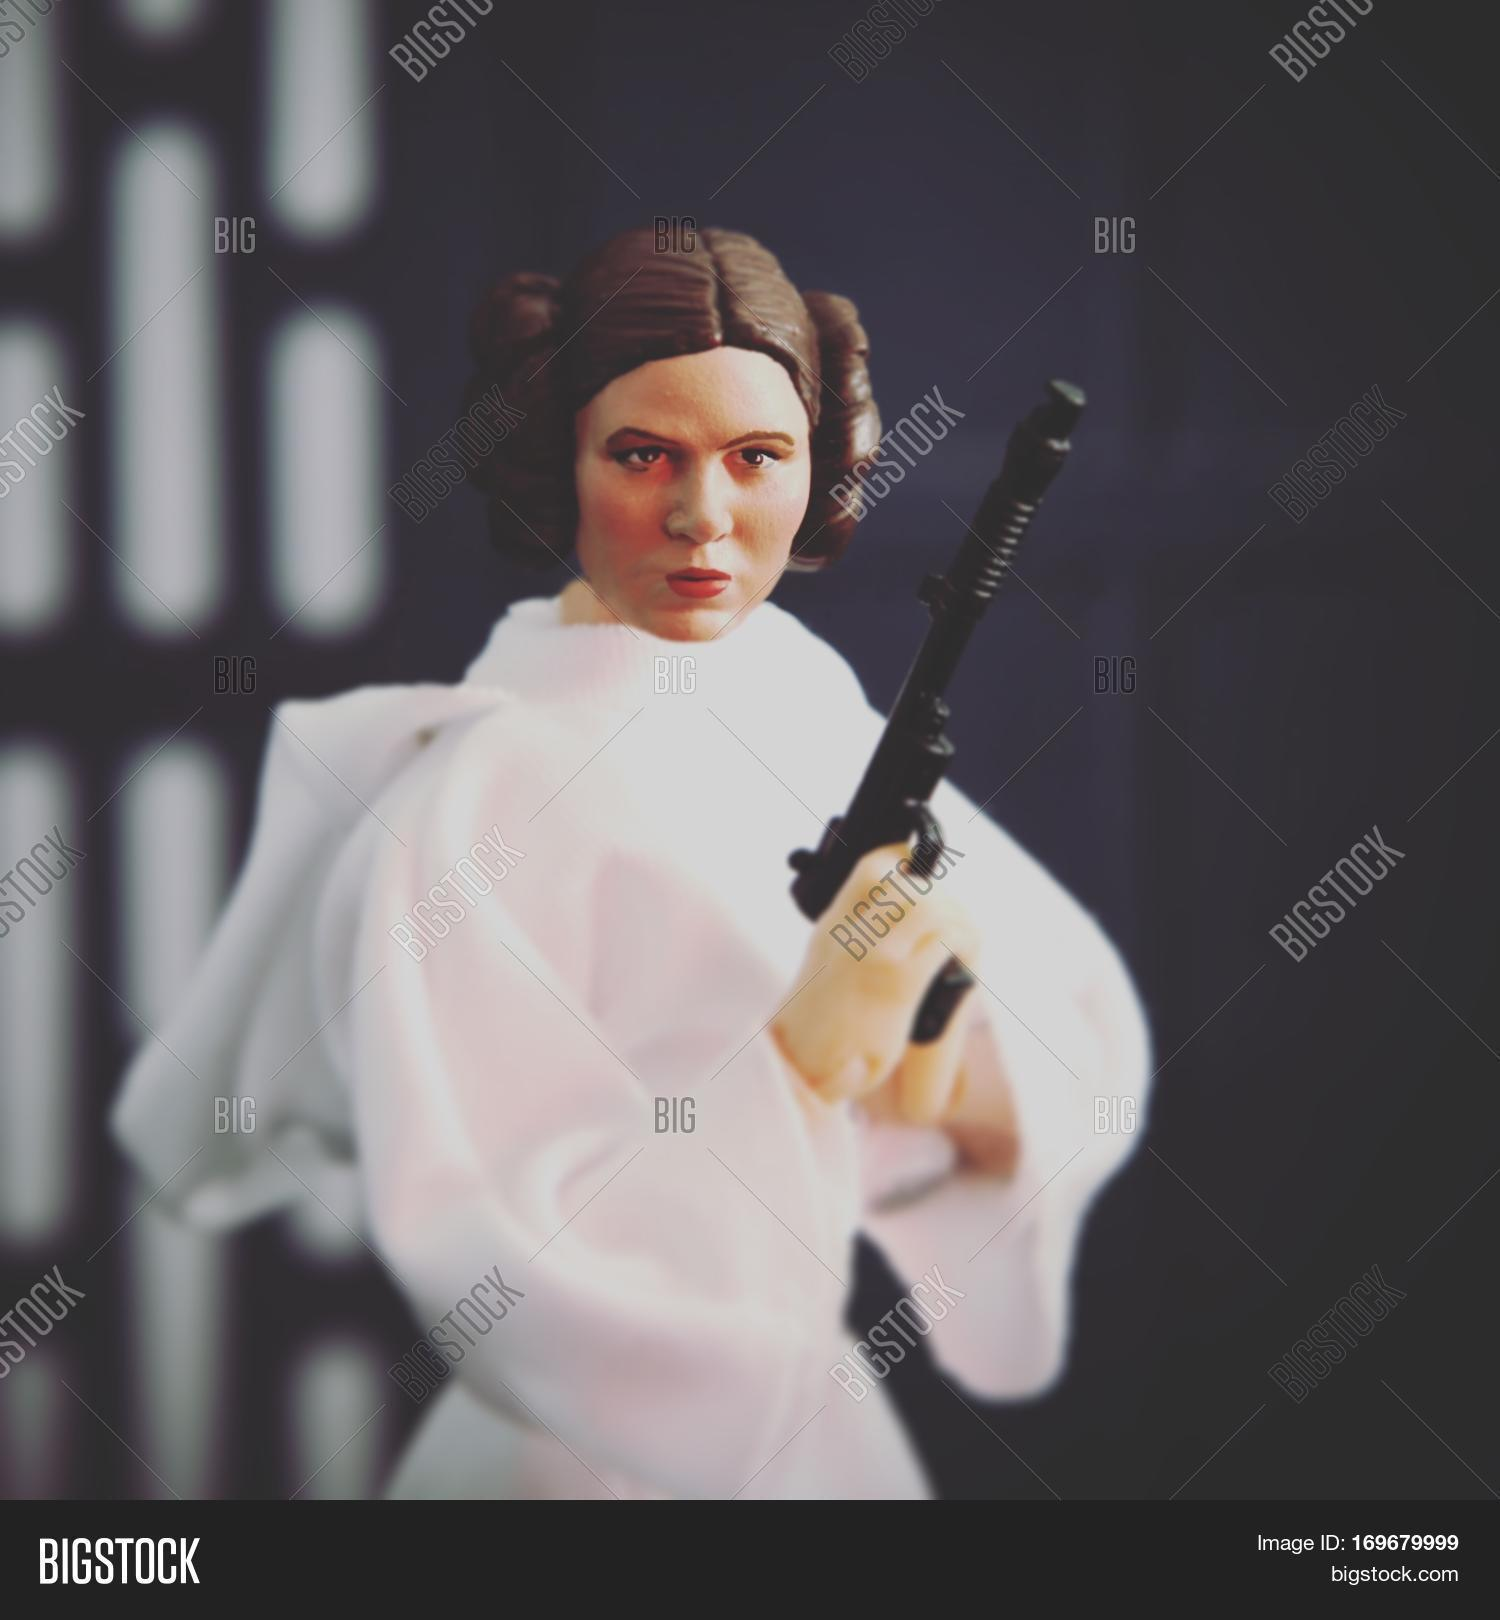 Carrie Fisher Princess Image Photo Free Trial Bigstock